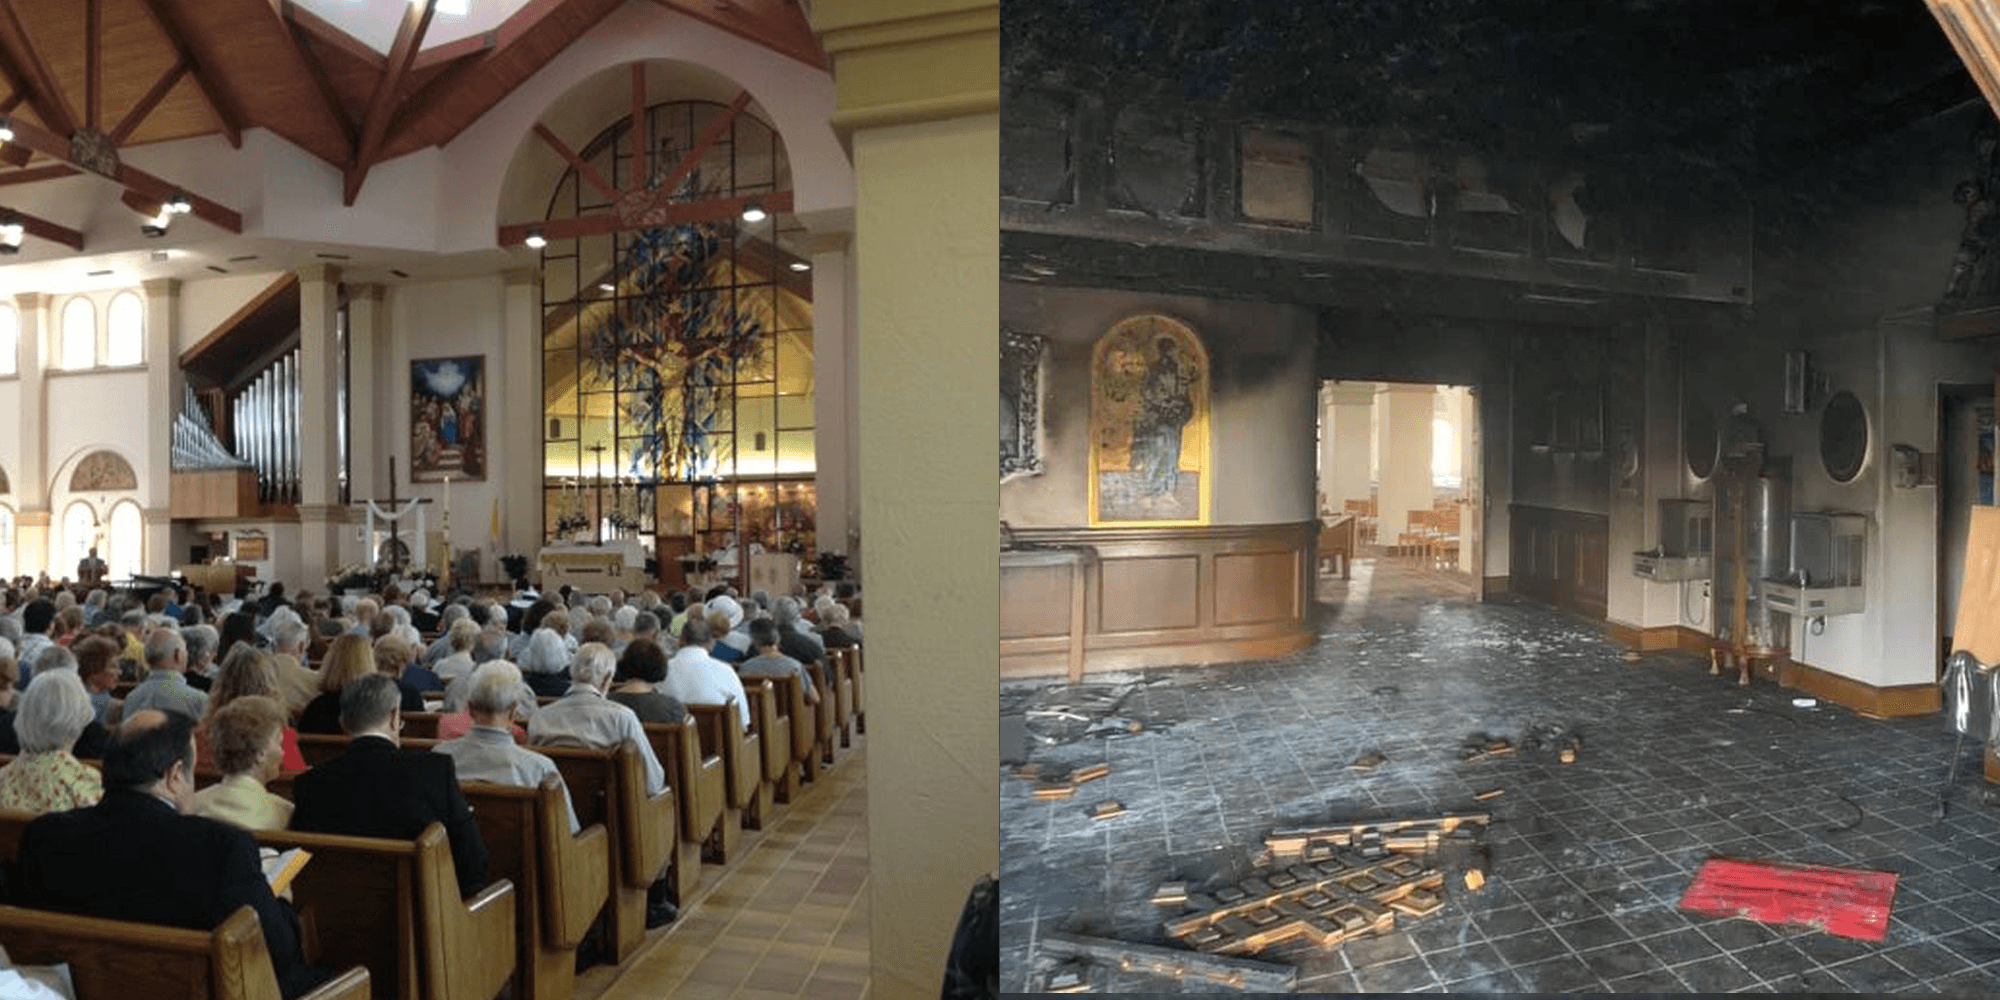 Florida man drives van into occupied Catholic church and sets it on fire